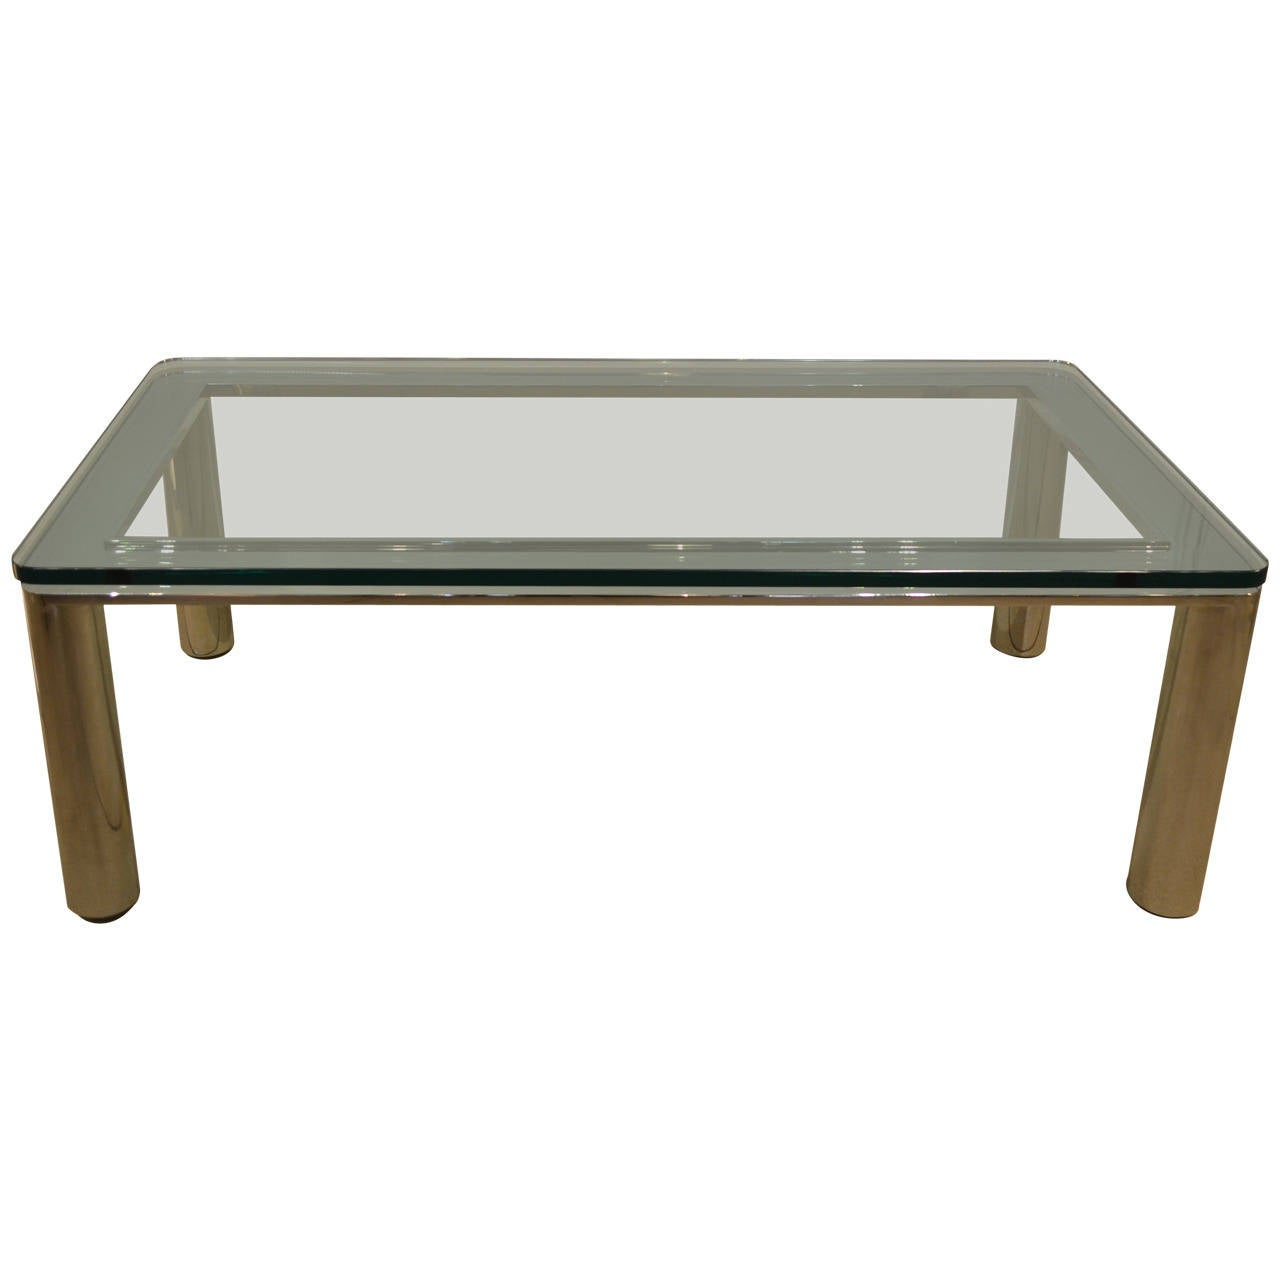 Glass coffee table with chrome base for sale at 1stdibs Glass coffee table base